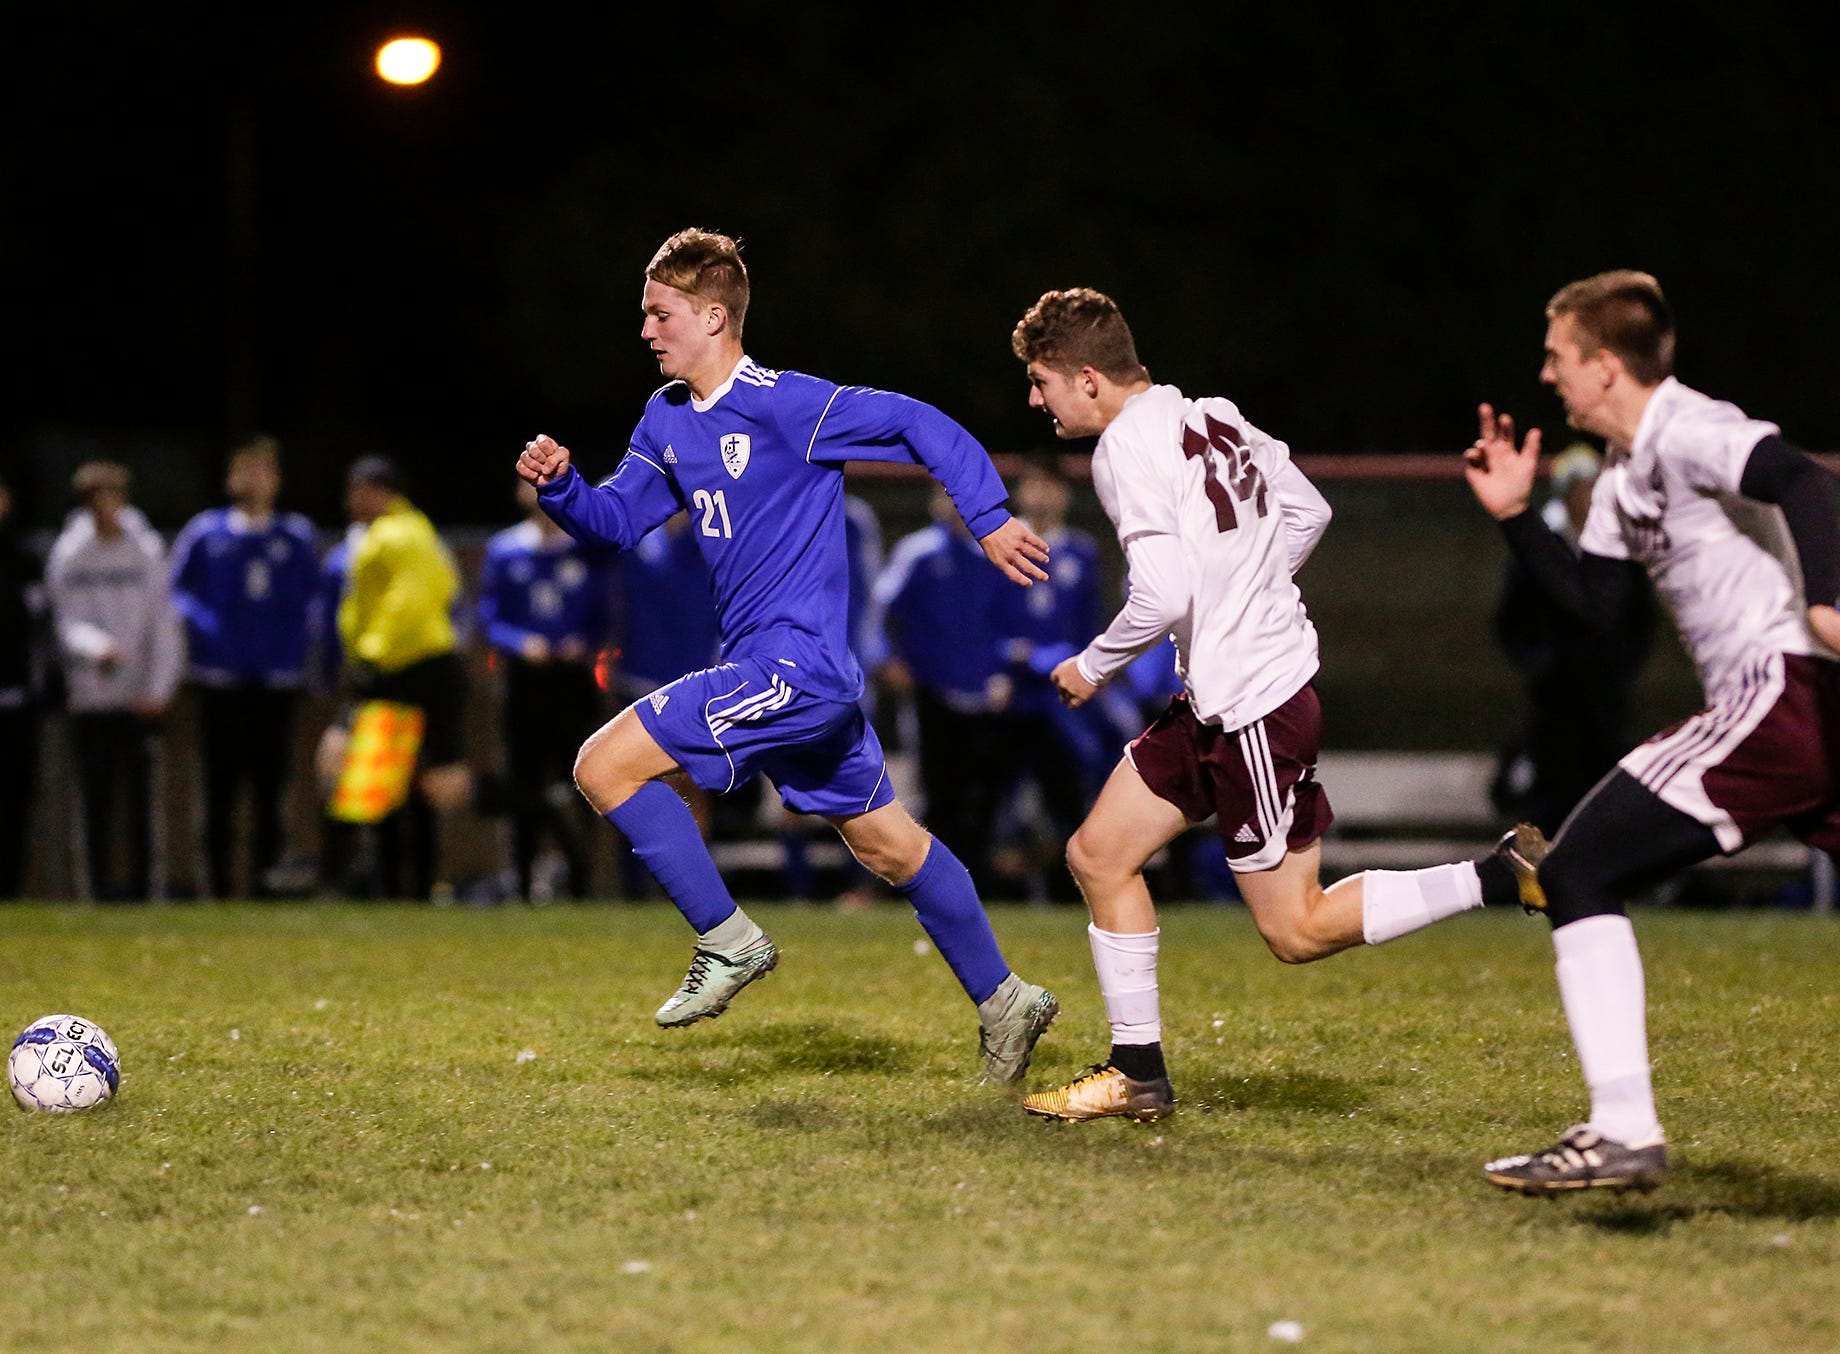 Winnebago Lutheran Academy soccer's Tyler Kuske works his way down the field against Omro High School during their WIAA regional playoff game Thursday, October 18, 2018 in Fond du Lac, Wisconsin. Doug Raflik/USA TODAY NETWORK-Wisconsin